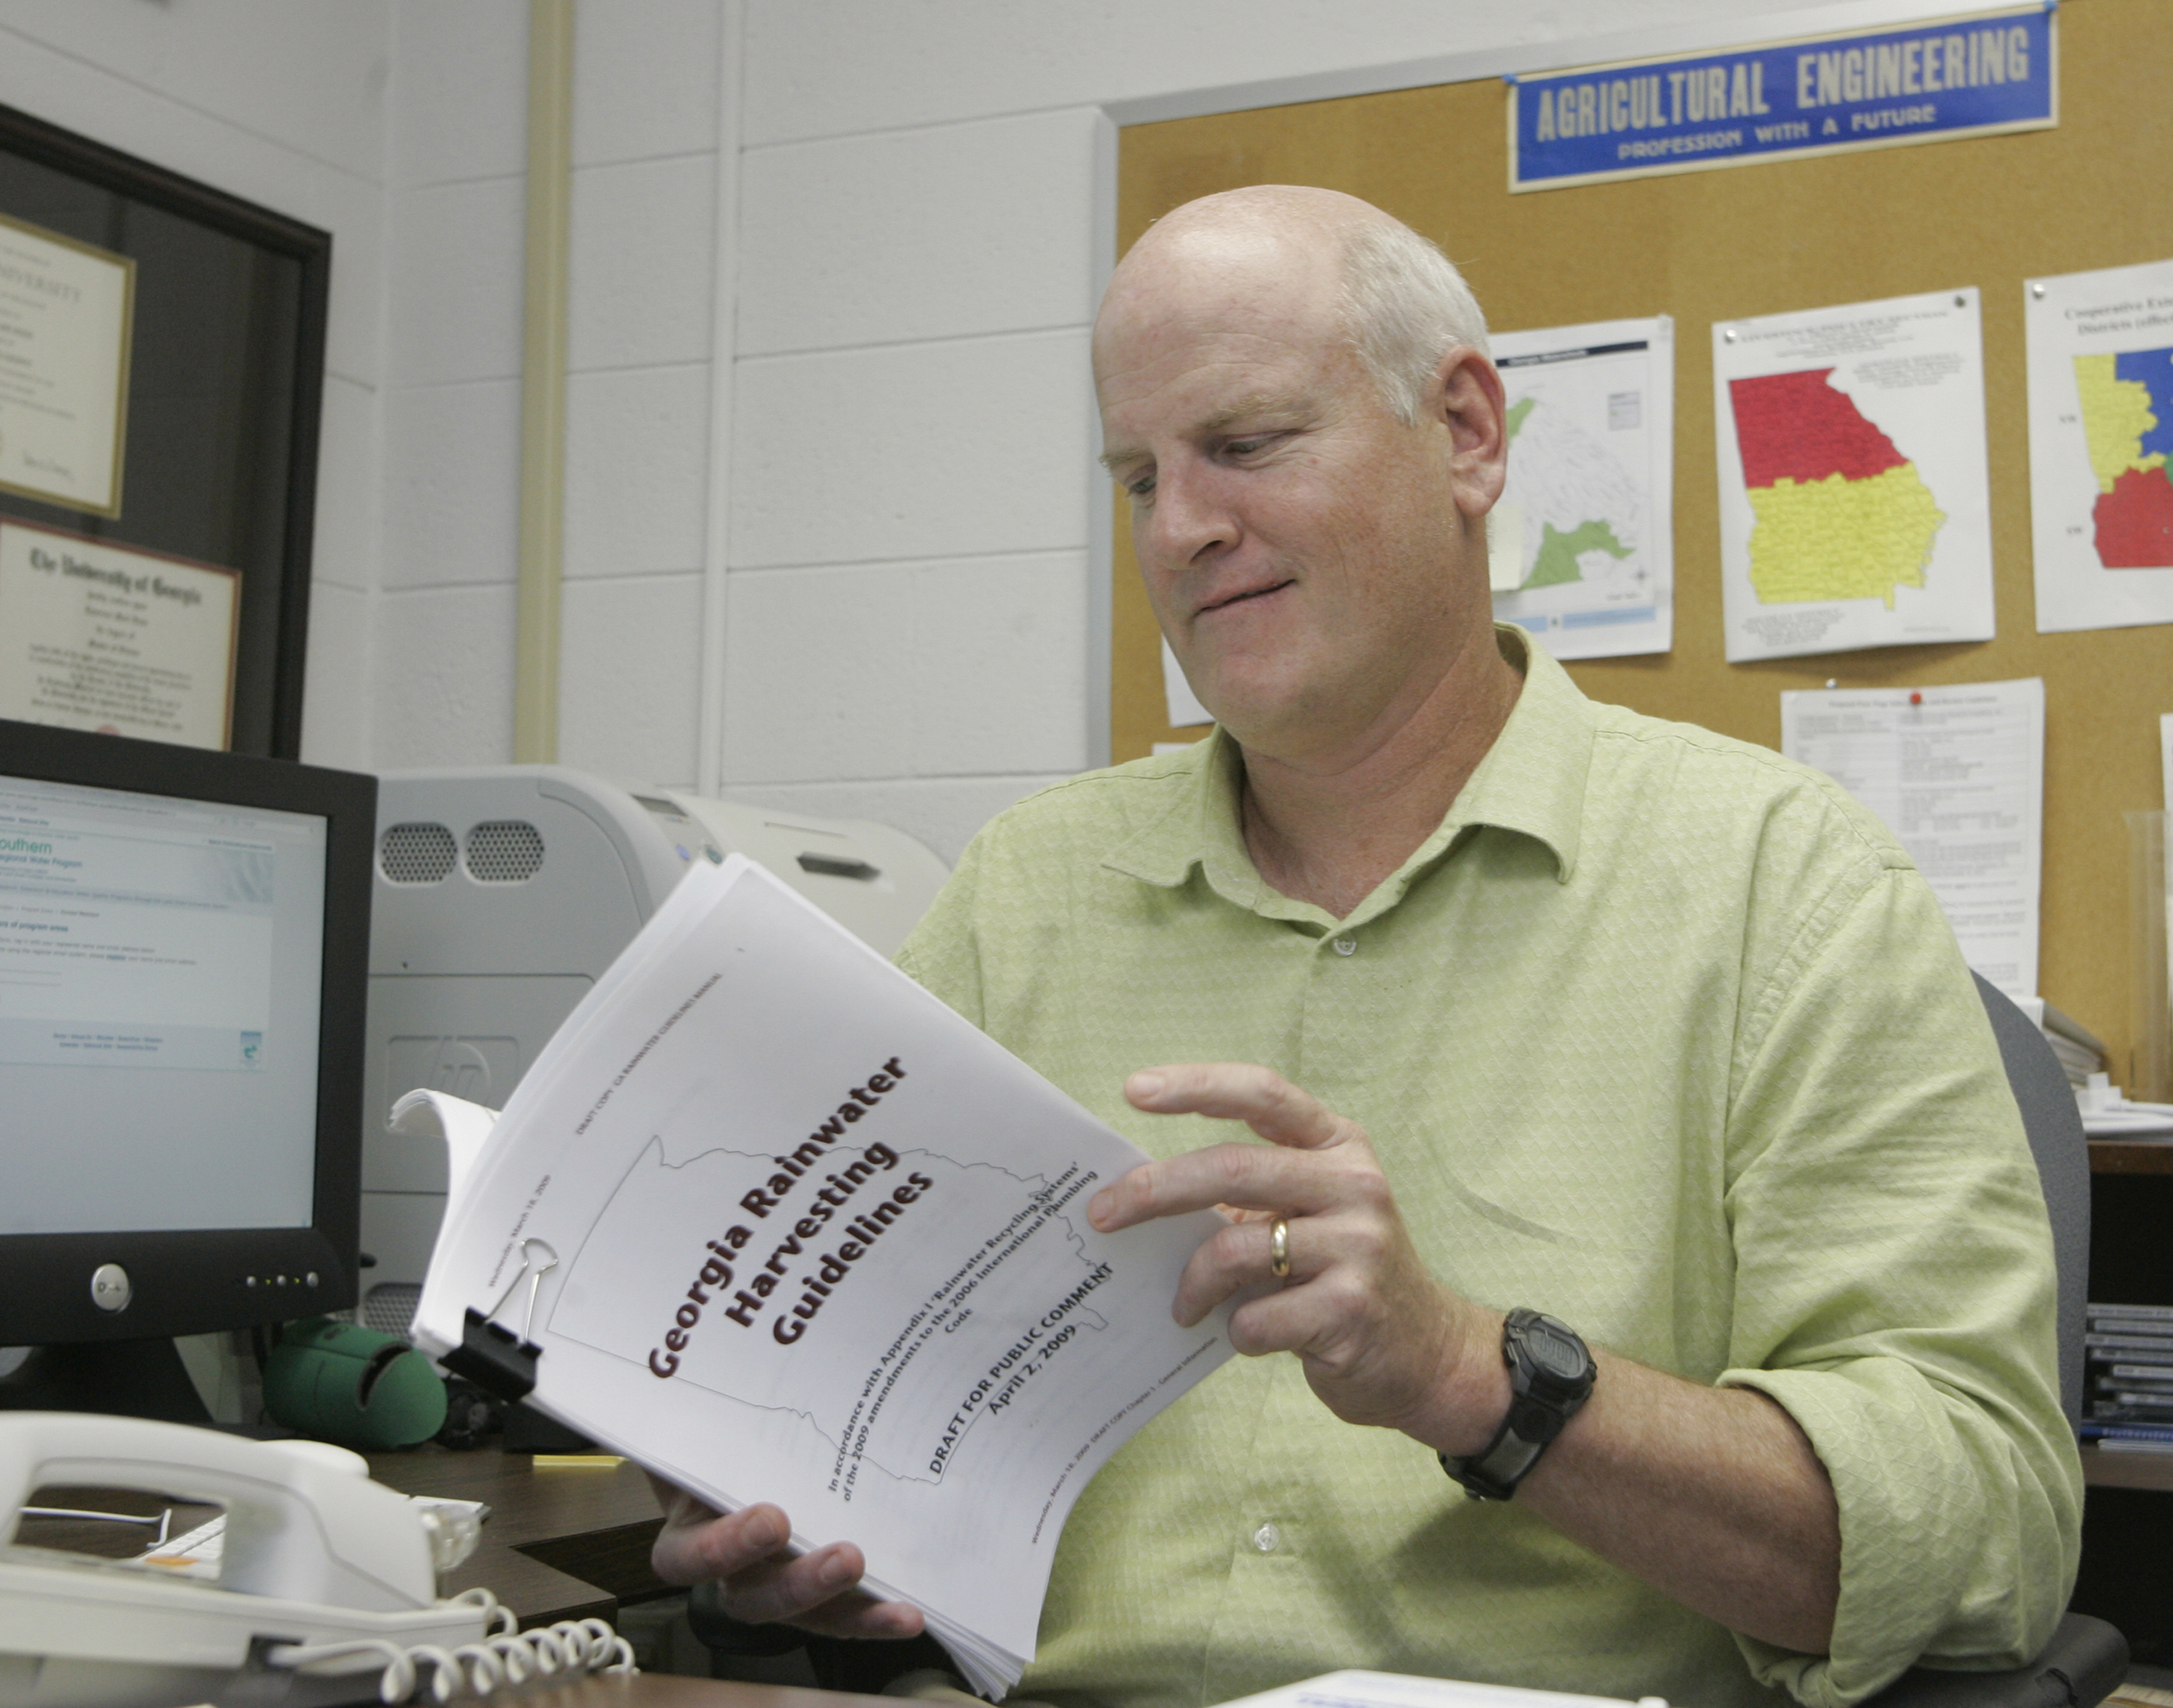 Mark Risse checks out a draft of the Georgia Rainwater Harvesting Guidelines. Risse is a University of Georgia Cooperative Extension engineer with the College of Agricultural and Environmental Sciences.